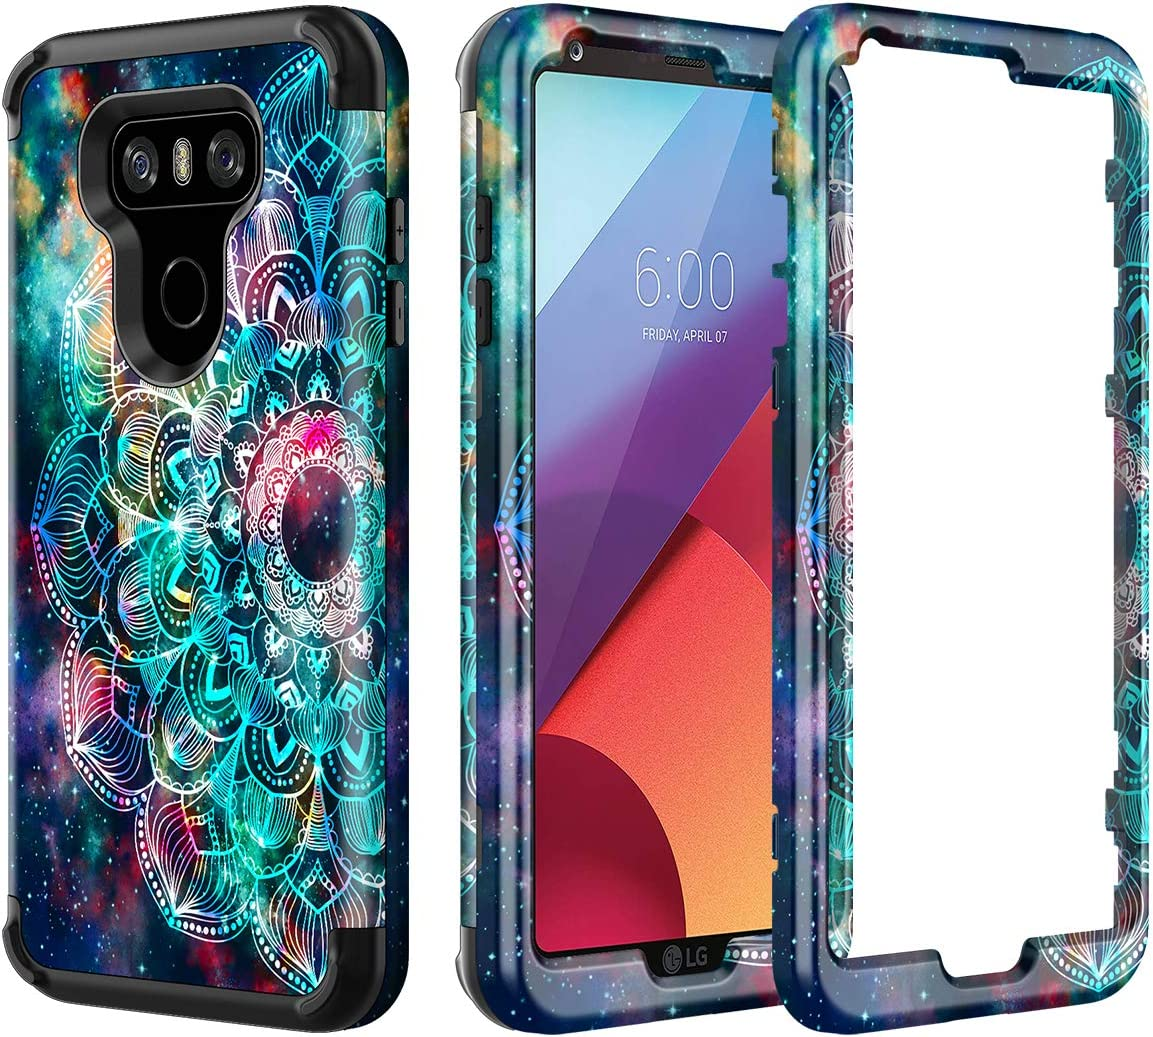 Lamcase Compatible with LG G6 Case Shockproof Dual Layer Hard PC & Flexible Silicone High Impact Durable Bumper Protective Case Cover for LG G6 2017, Mandala/Galaxy